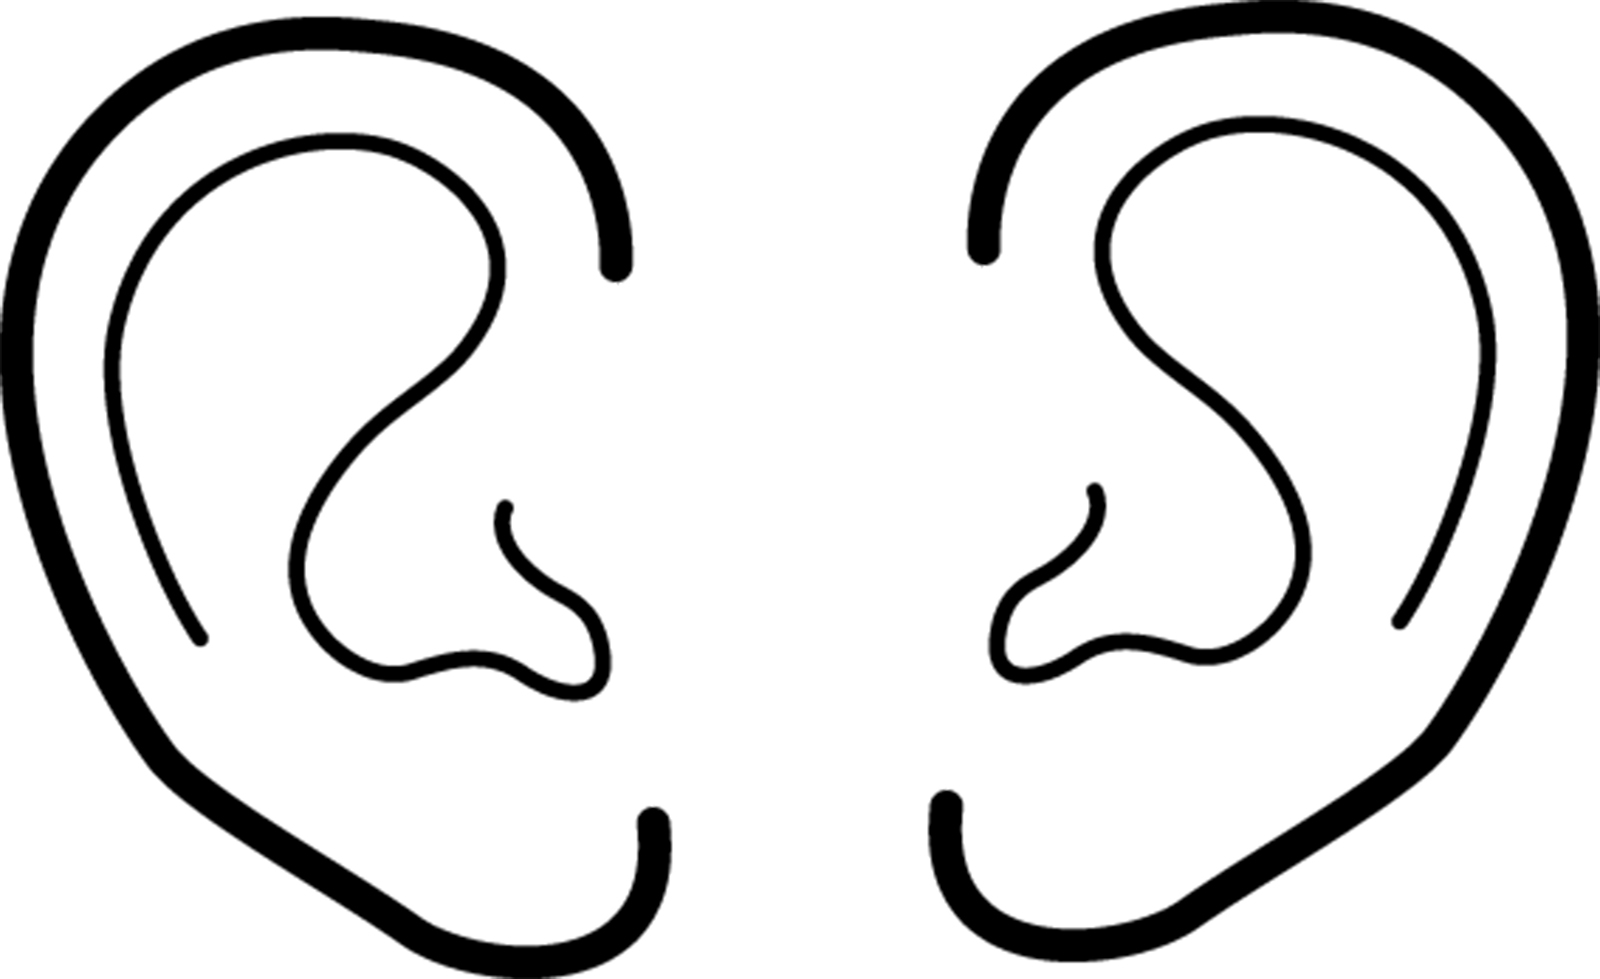 Ear clipart earclipart images listening clip art photo